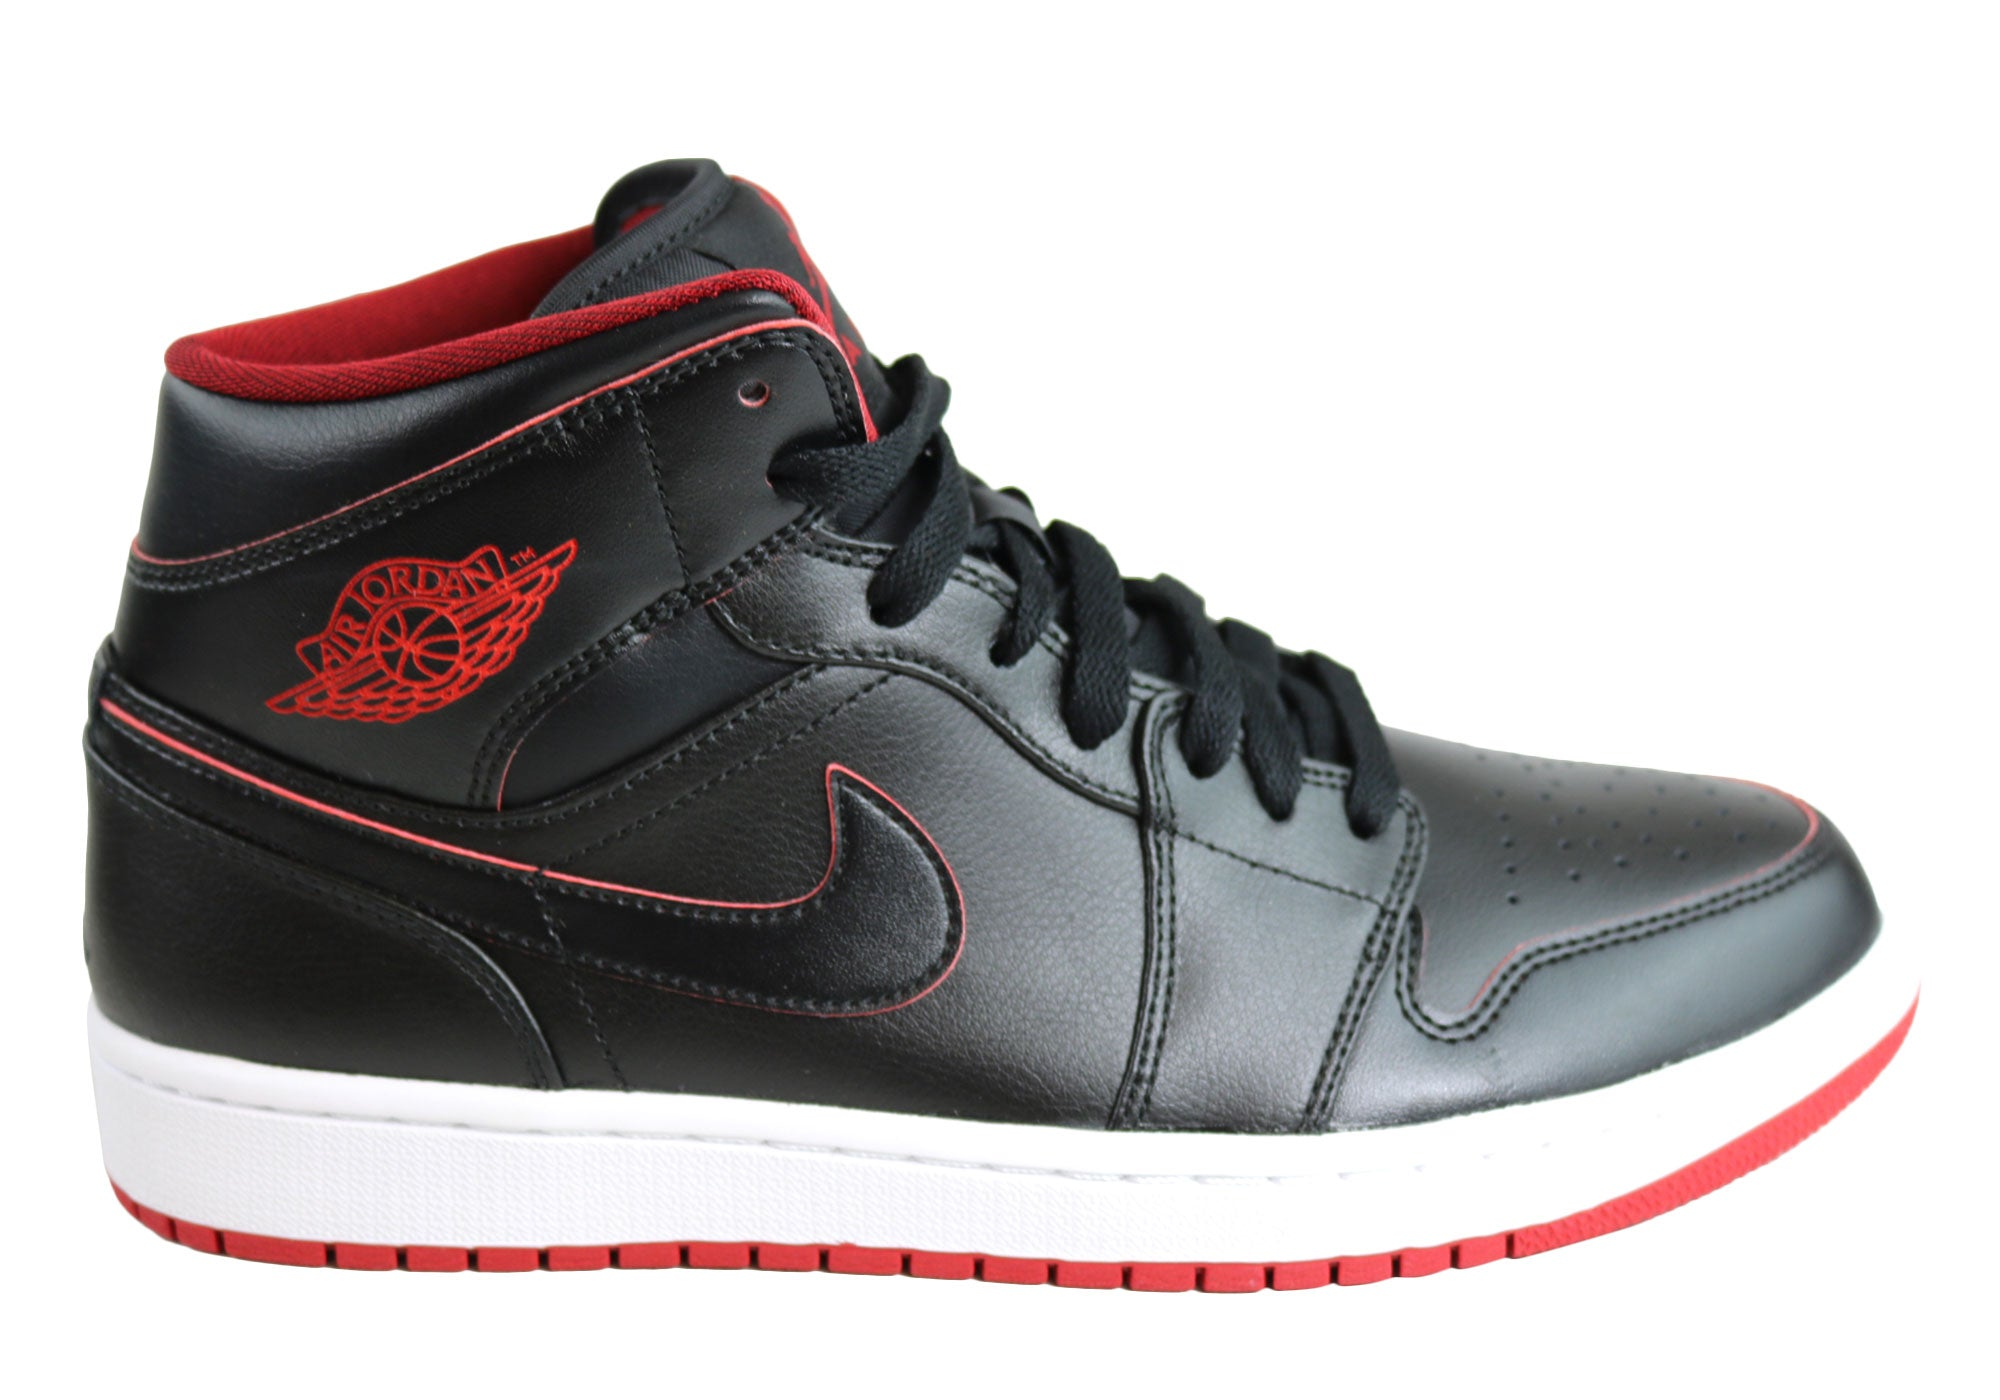 new style 6f060 51582 Home Nike Air Jordan 1 Mid Hi Tops Basketball Shoes. Black White  ...